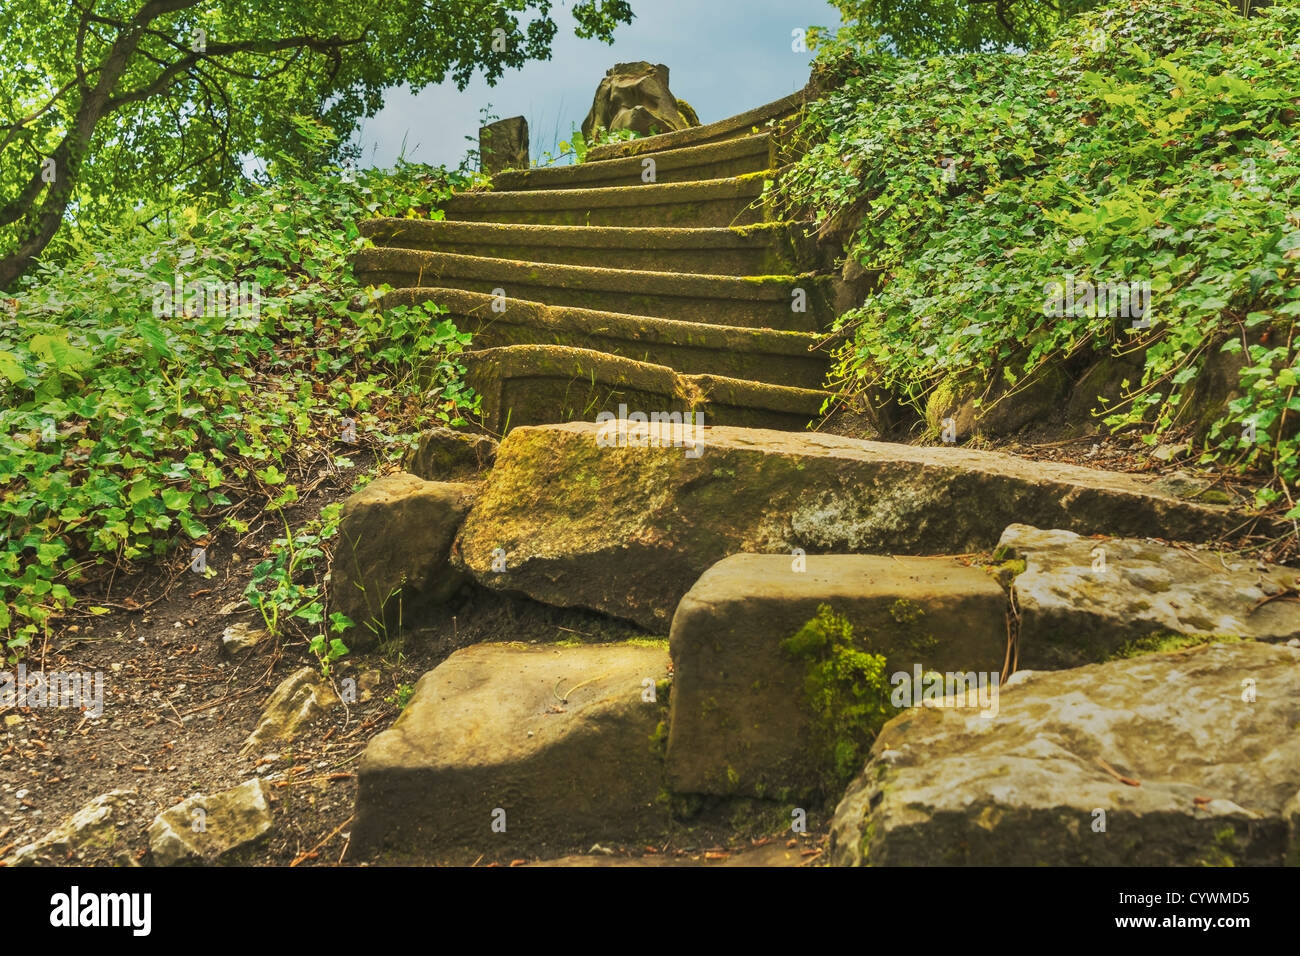 Detail photo of an old staircase, many steps - Stock Image